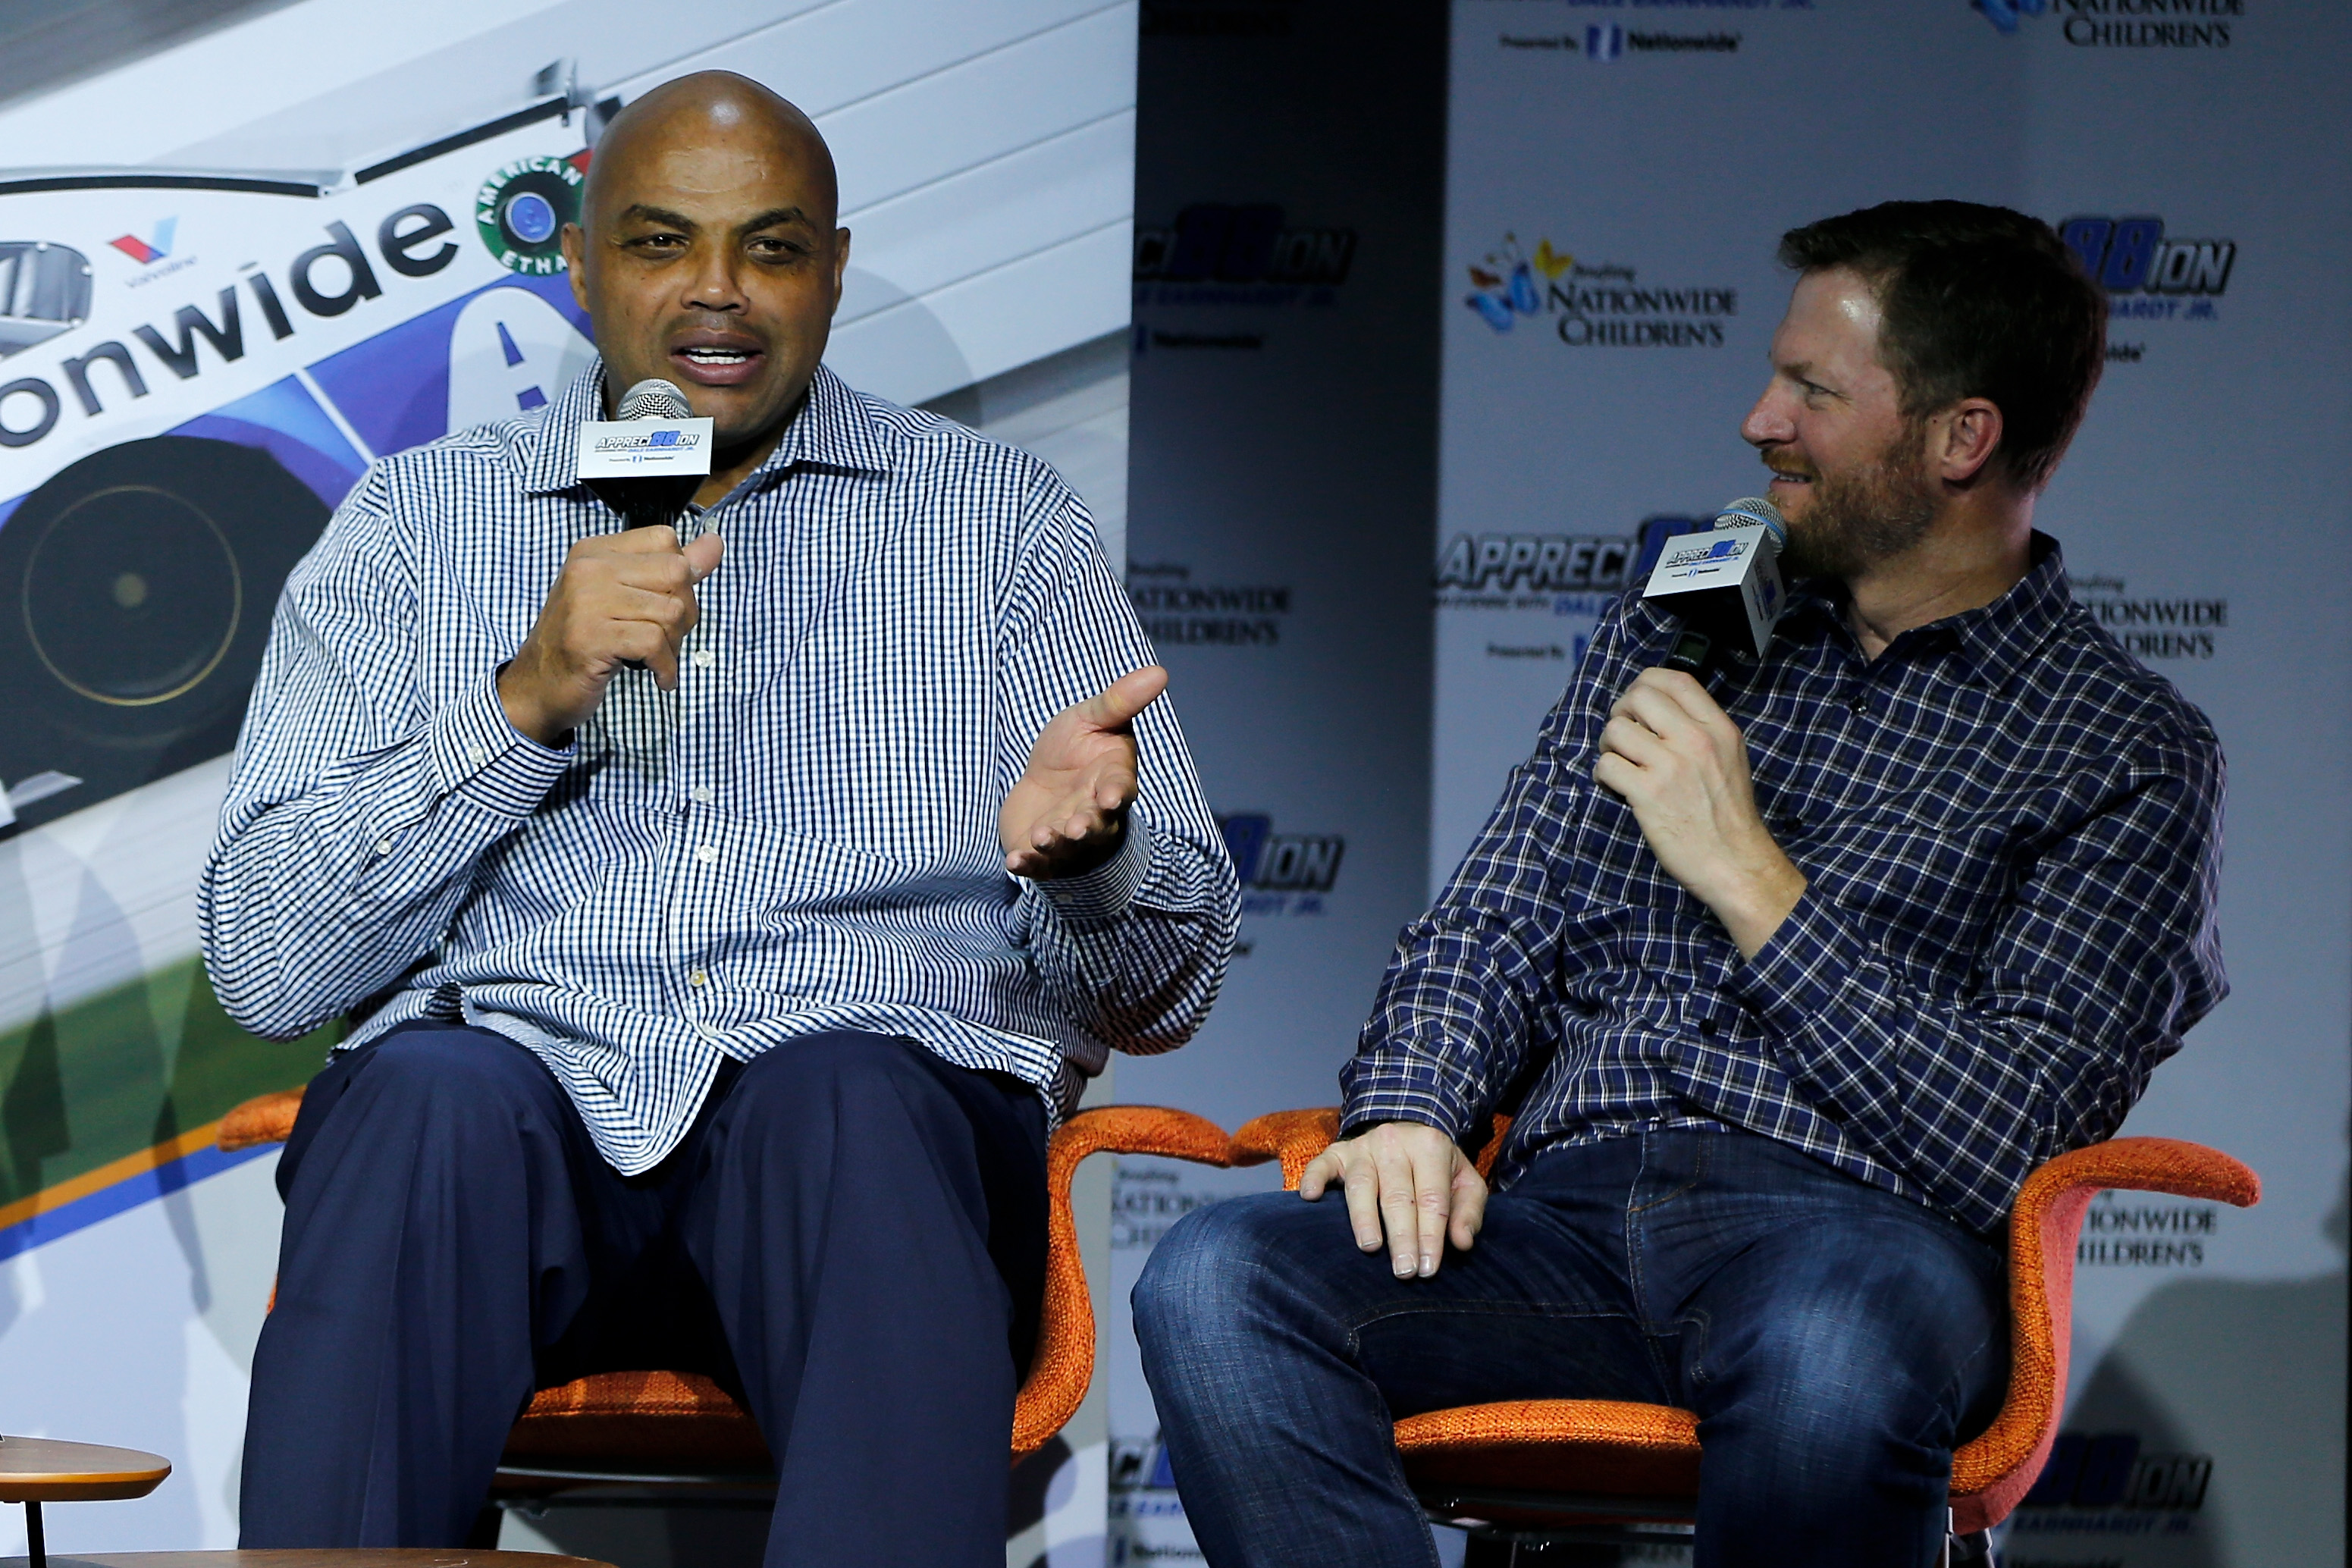 Dale Earnhardt Jr. Once Raced Charles Barkley and Explained How It Went: 'He Wasn't Turrible'